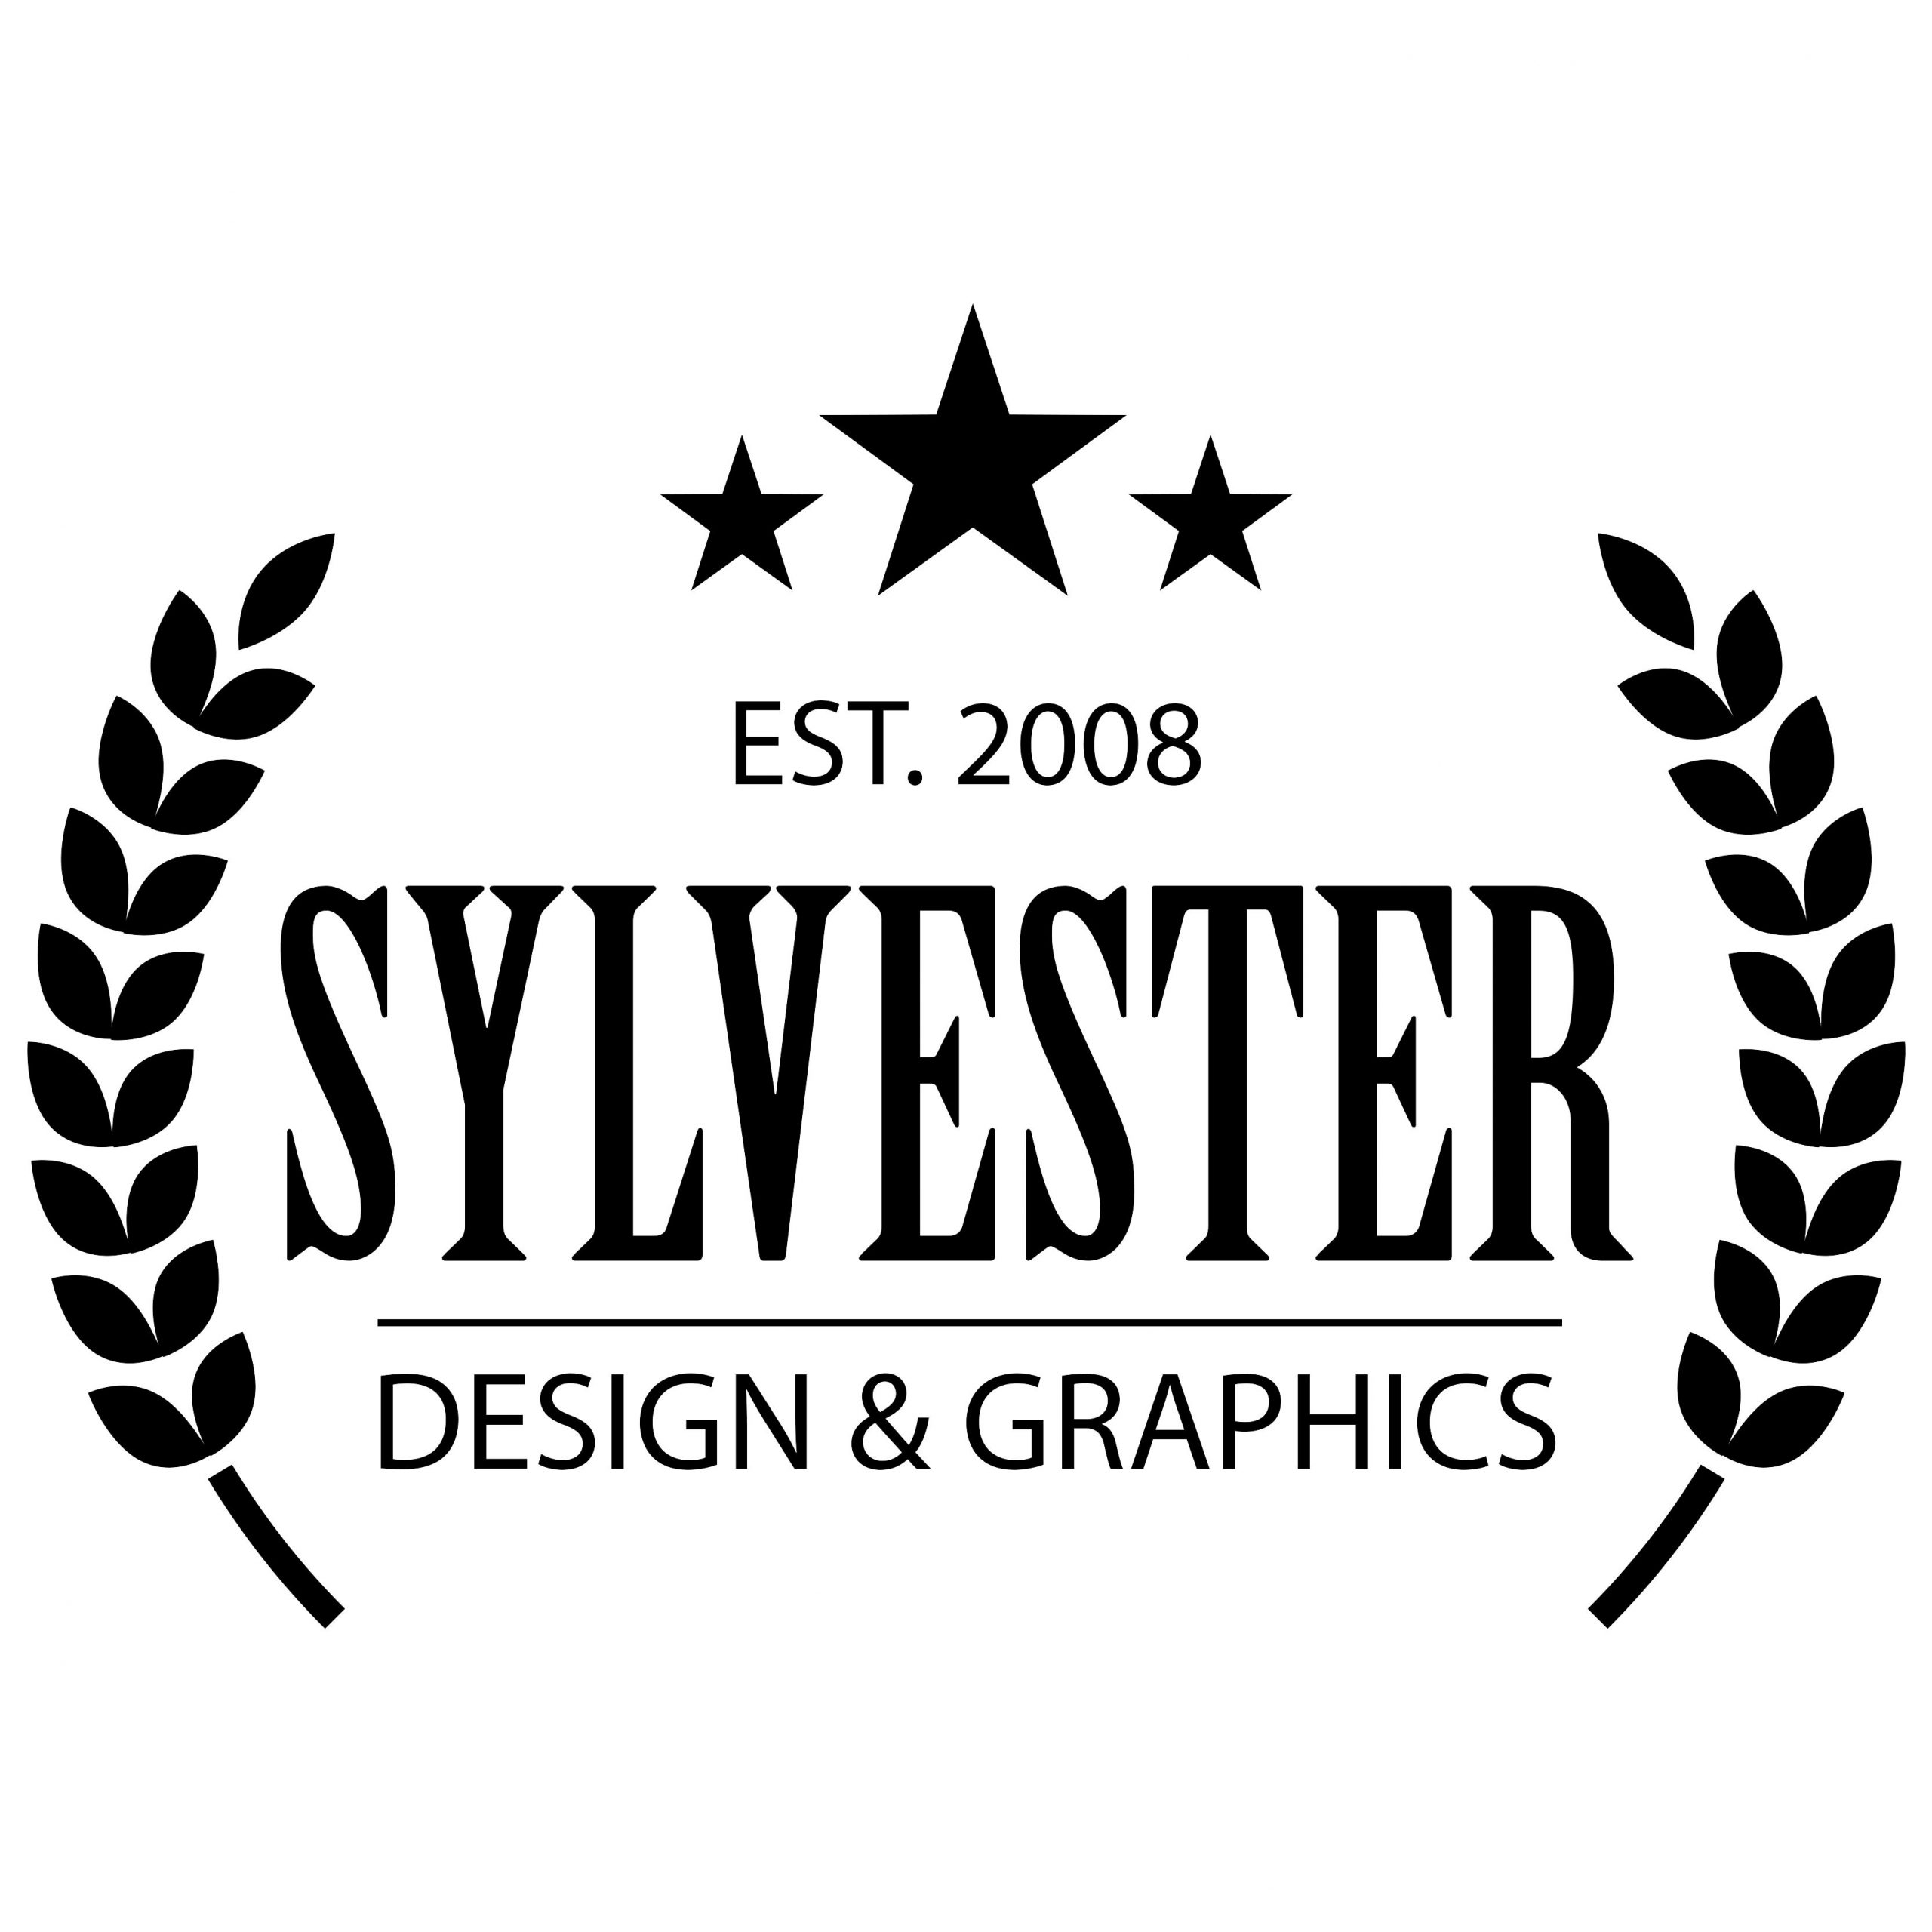 Sylvester Design & Graphics